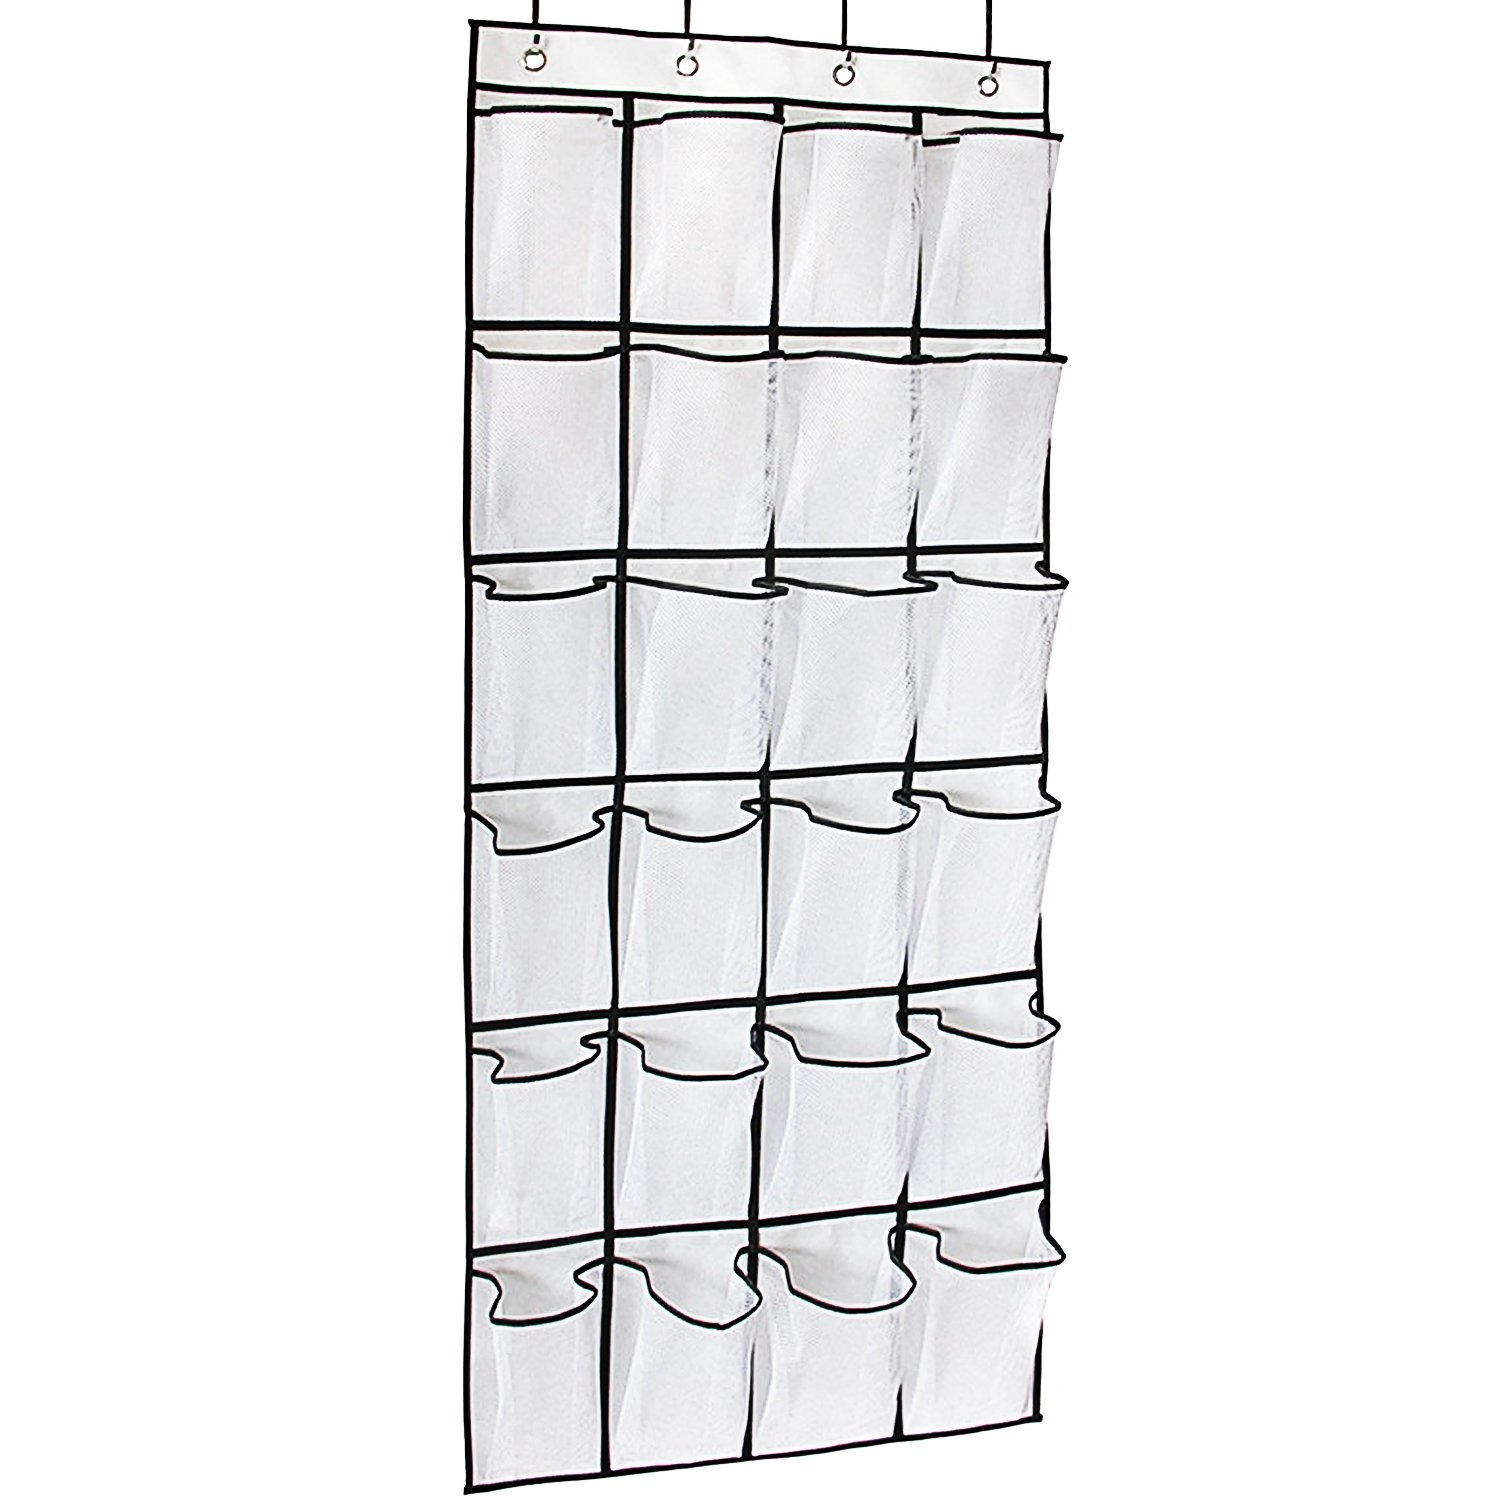 Freyry Over The Door Shoe Organizer 24 Large Mesh Pockets (White) USXZGD02MH